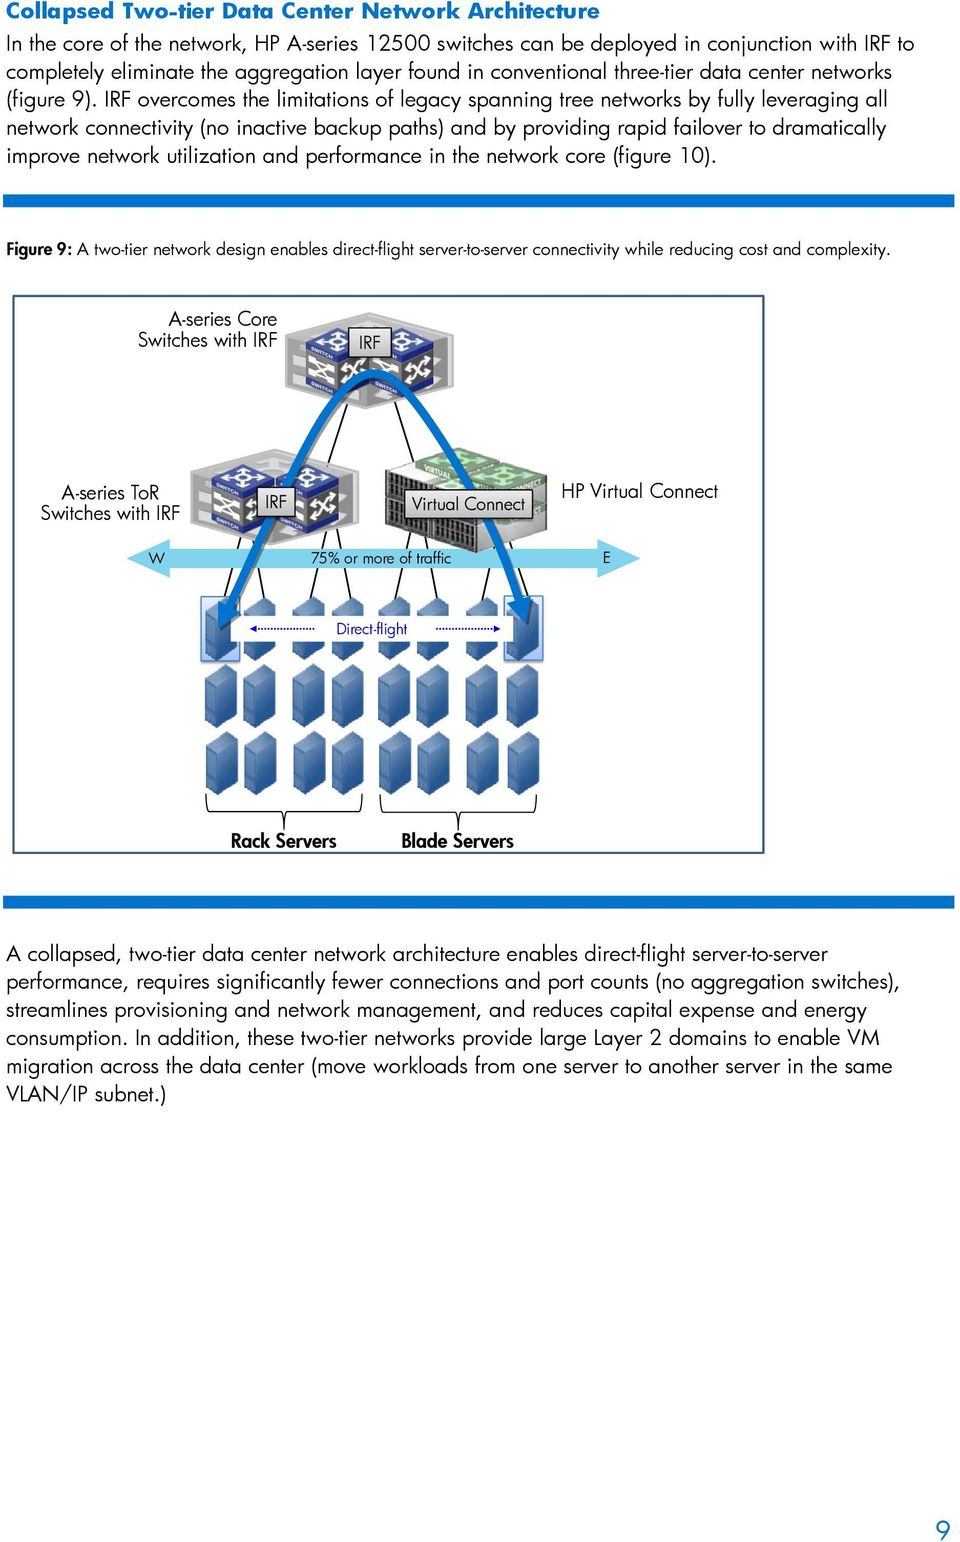 IRF overcomes the limitations of legacy spanning tree networks by fully leveraging all network connectivity (no inactive backup paths) and by providing rapid failover to dramatically improve network